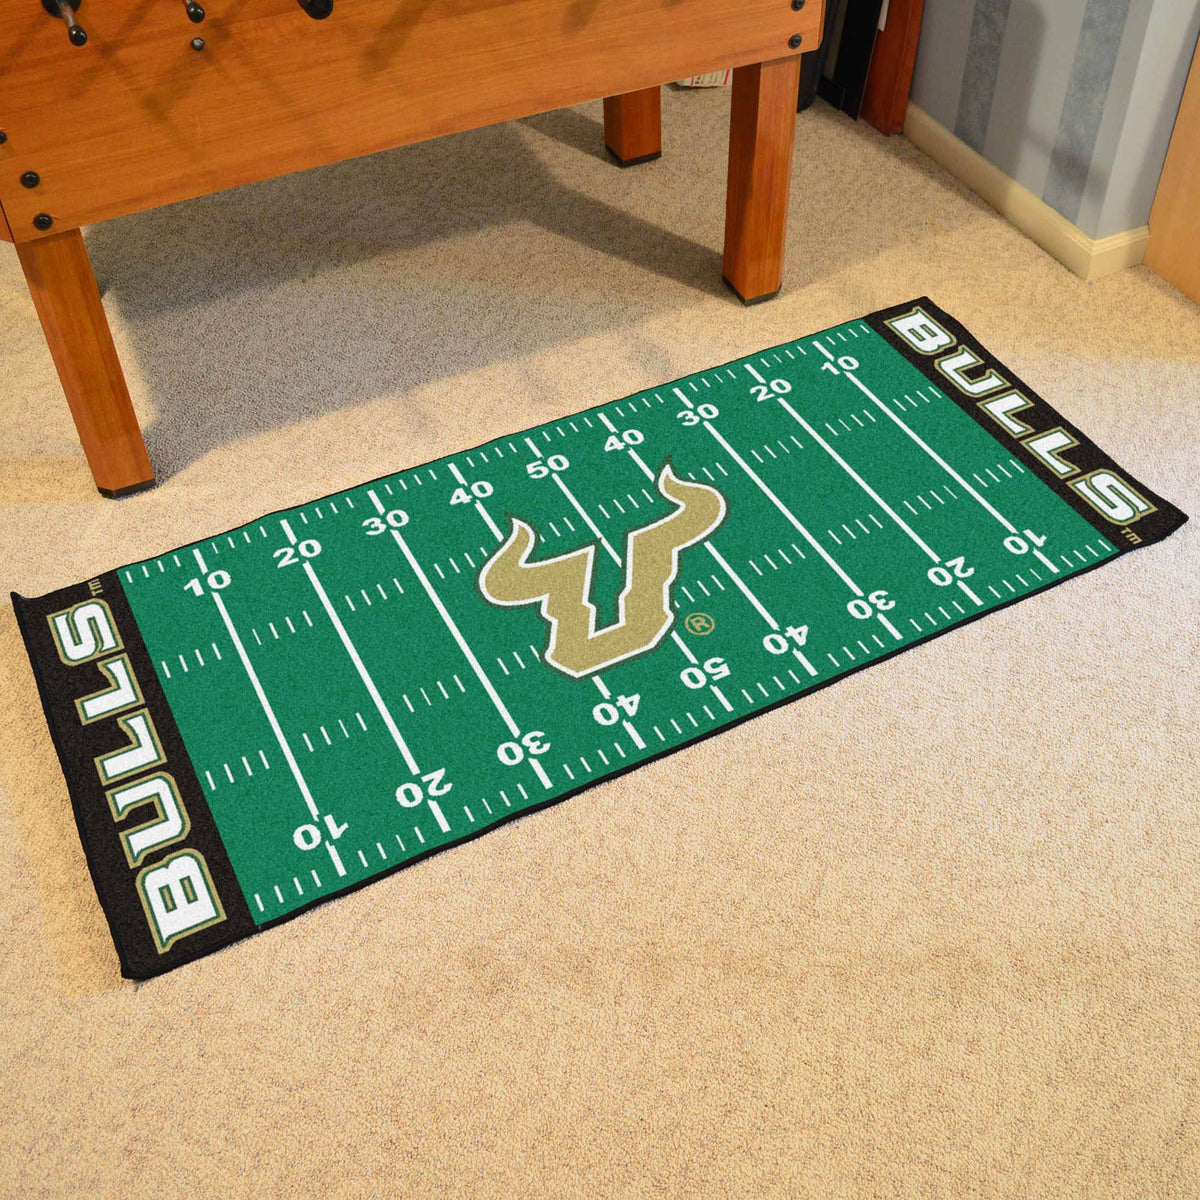 Collegiate - Football Field Runner Collegiate Mats, Rectangular Mats, Football Field Runner, Collegiate, Home Fan Mats South Florida